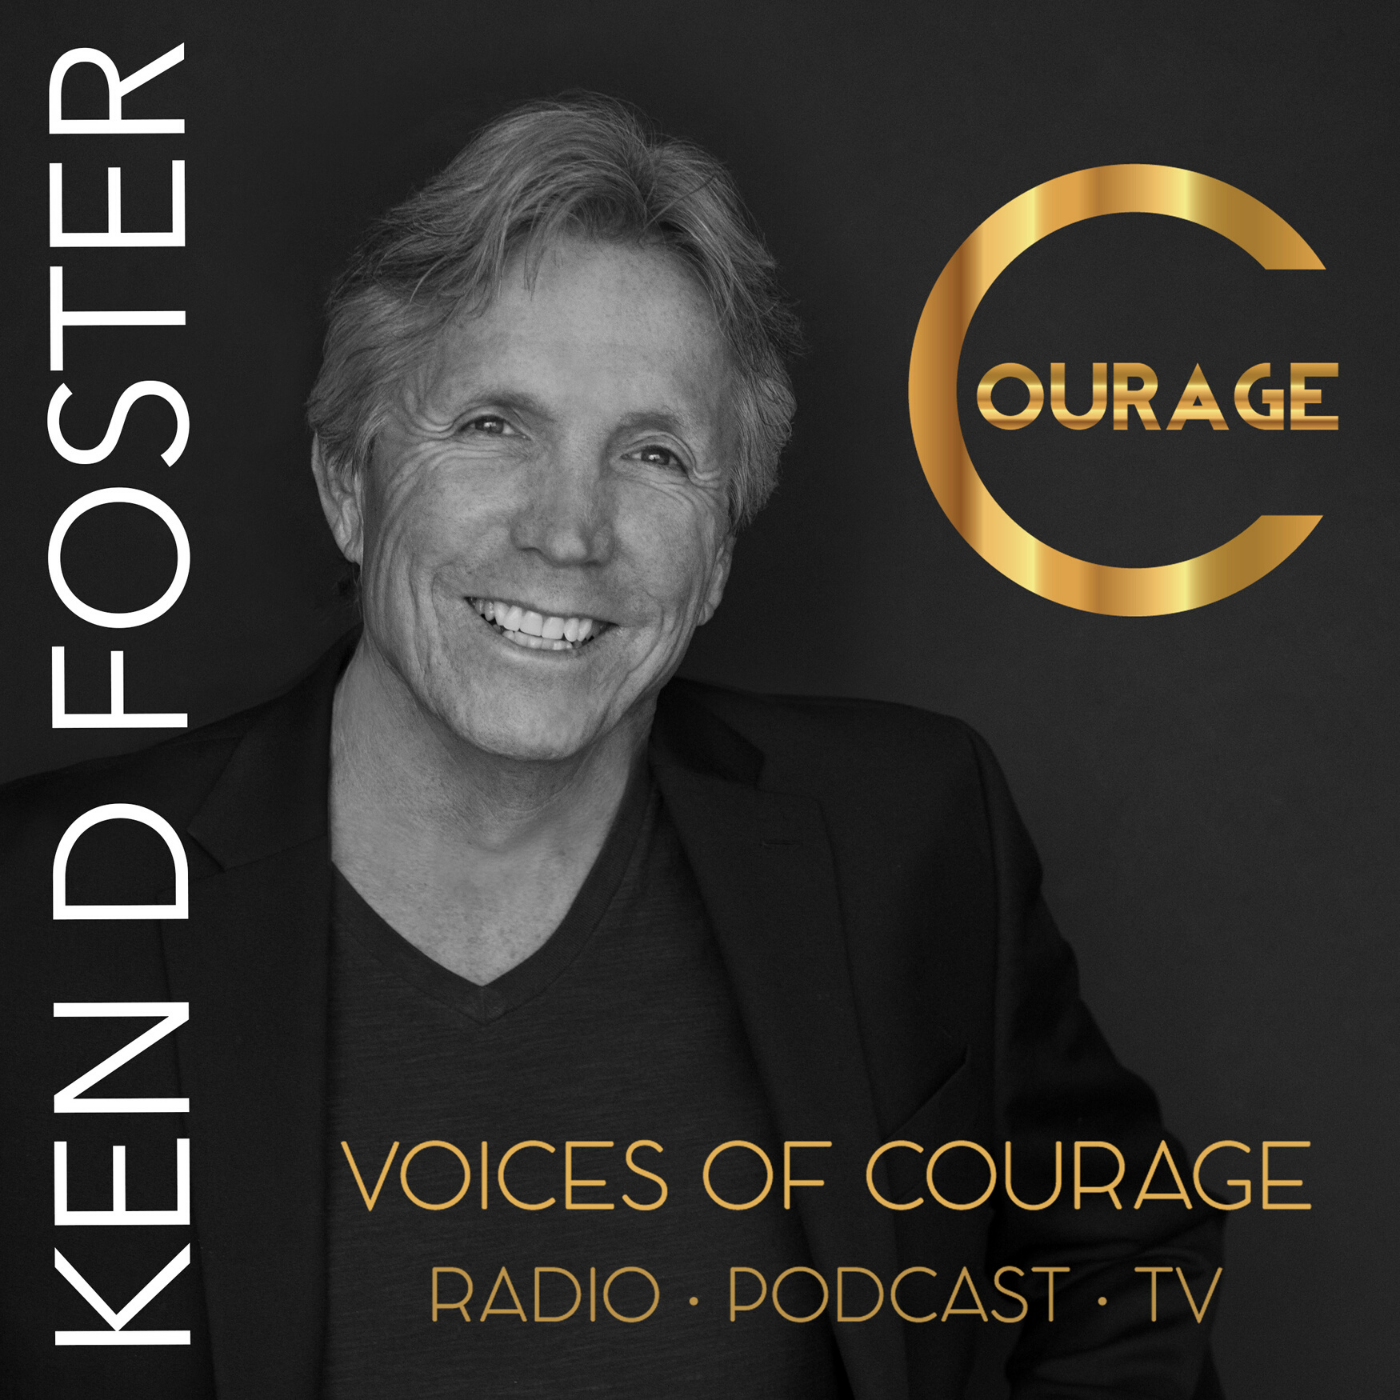 099: The Courage to Be the Best Version of You with Dr. Harold N. Levinson and Johann Ilgenfritz show art